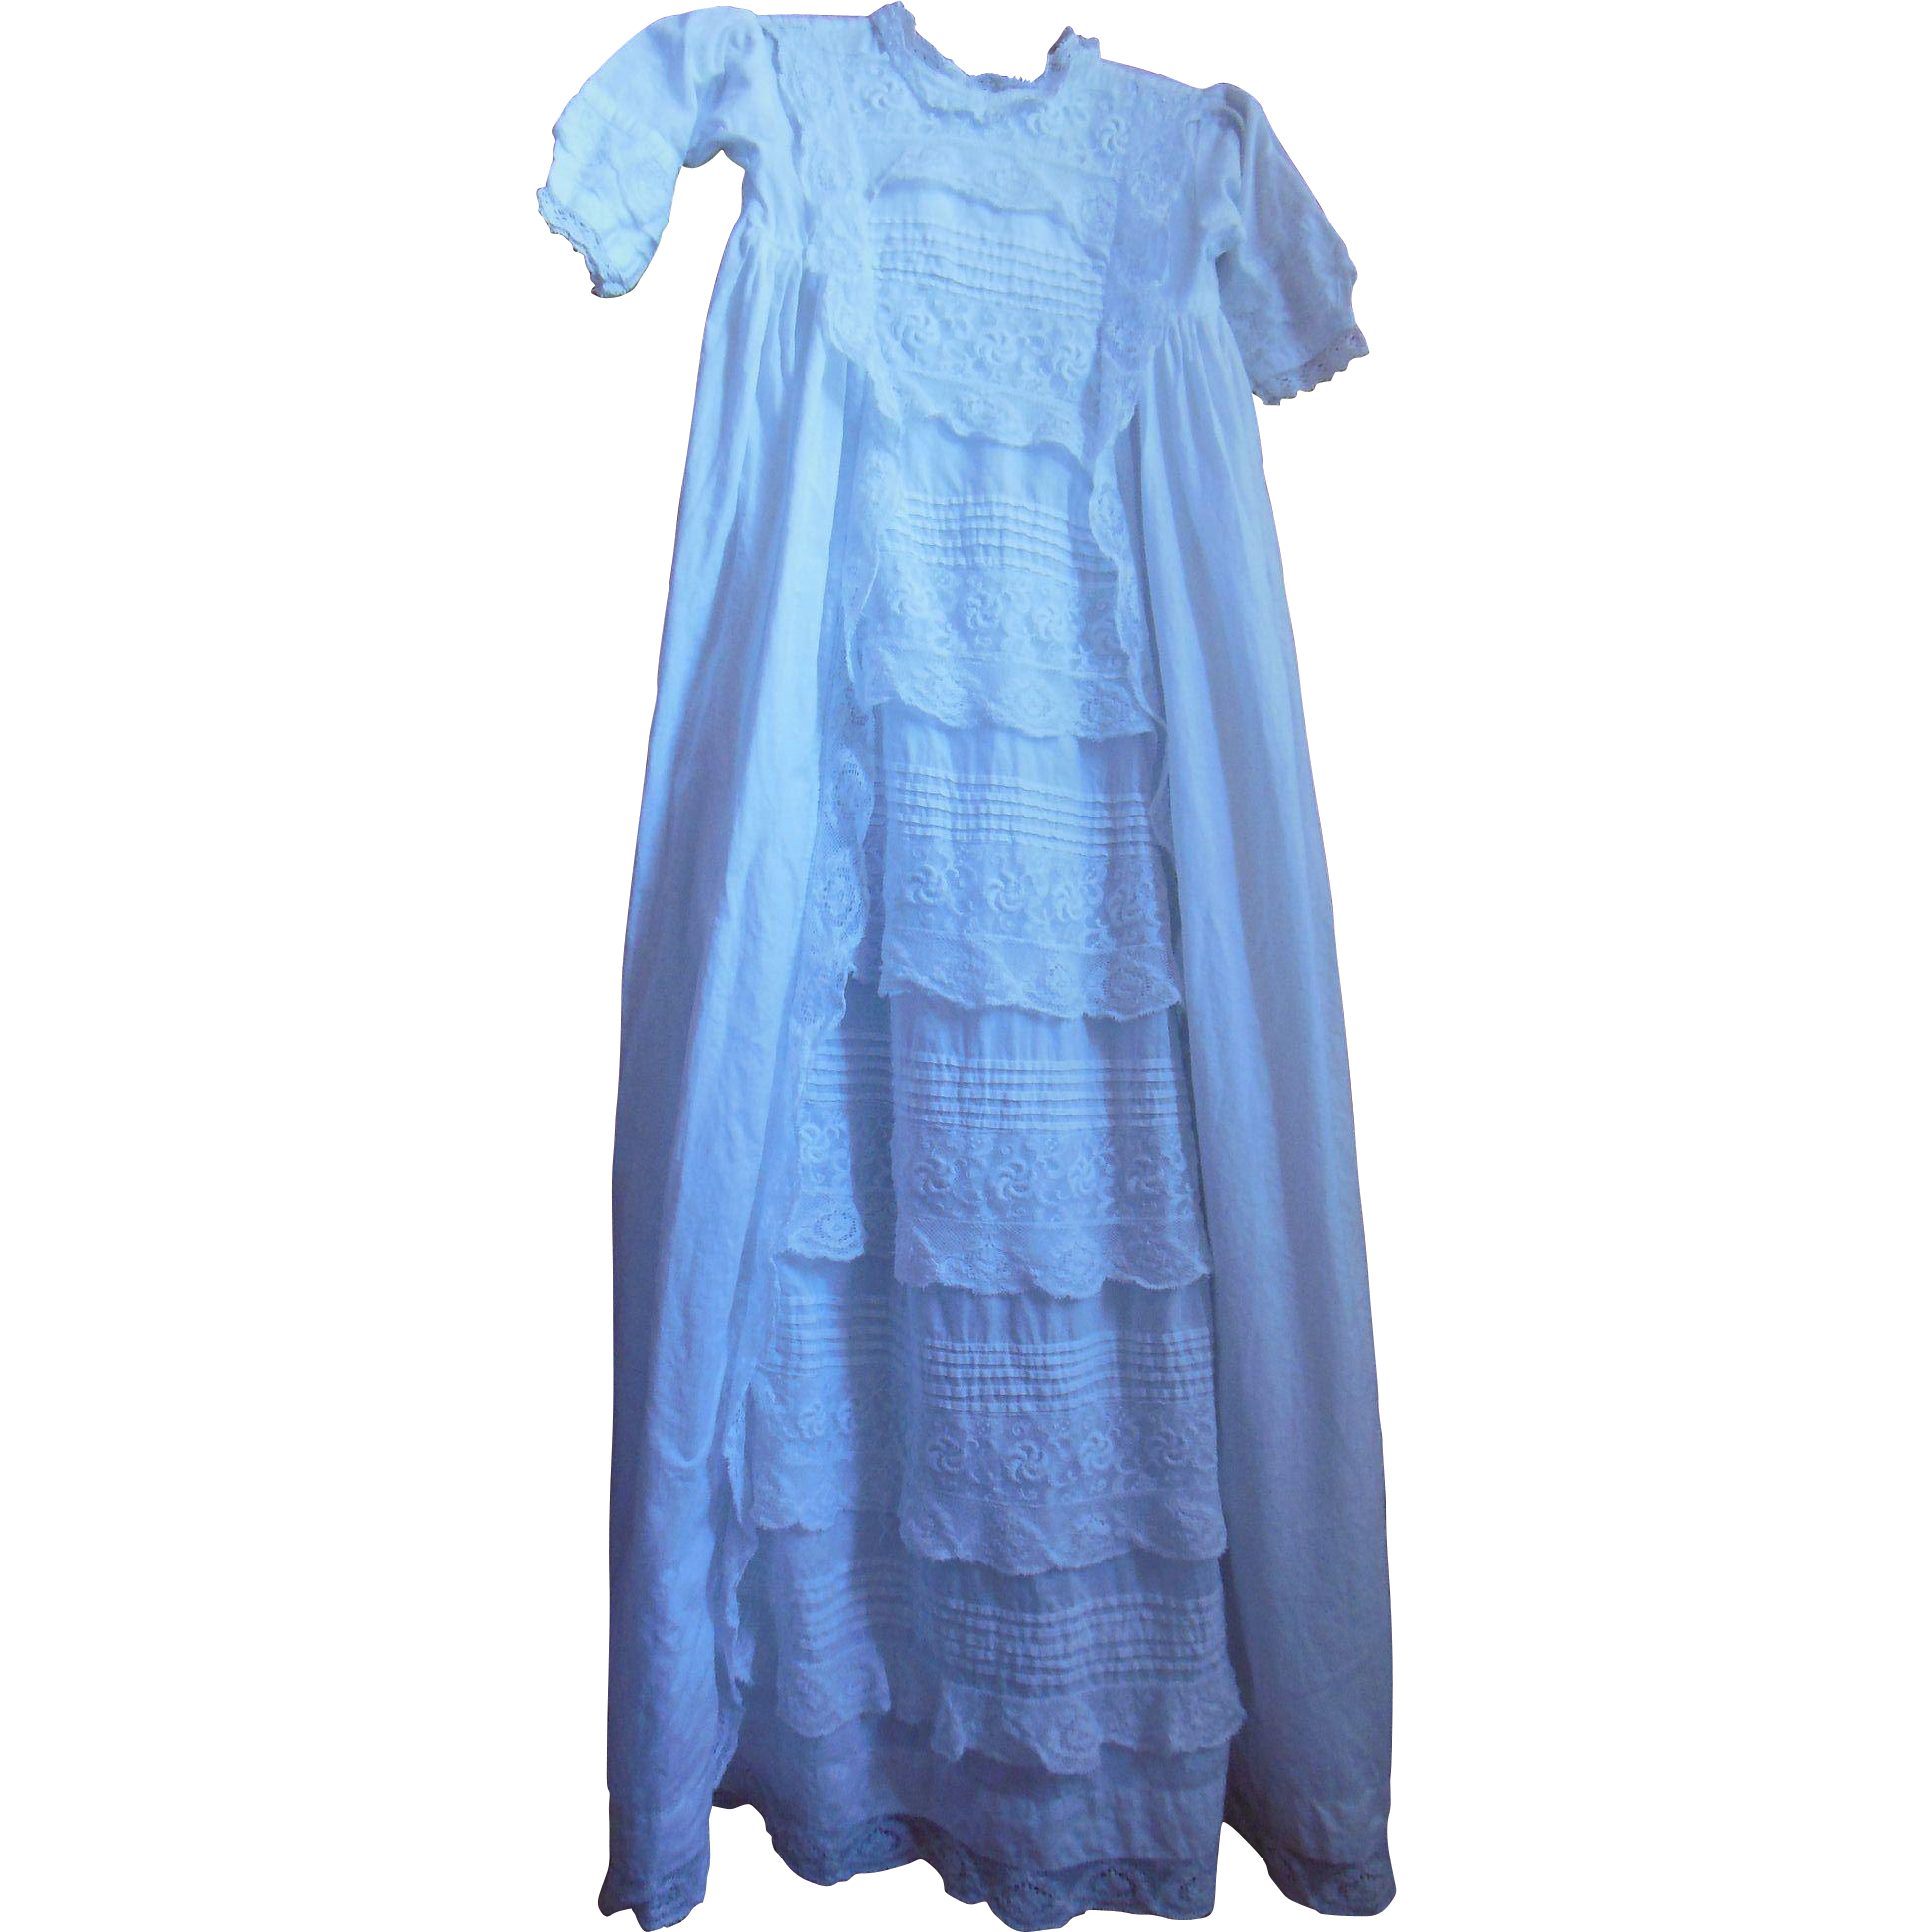 Lovely cotton lace christening gown ca 1900